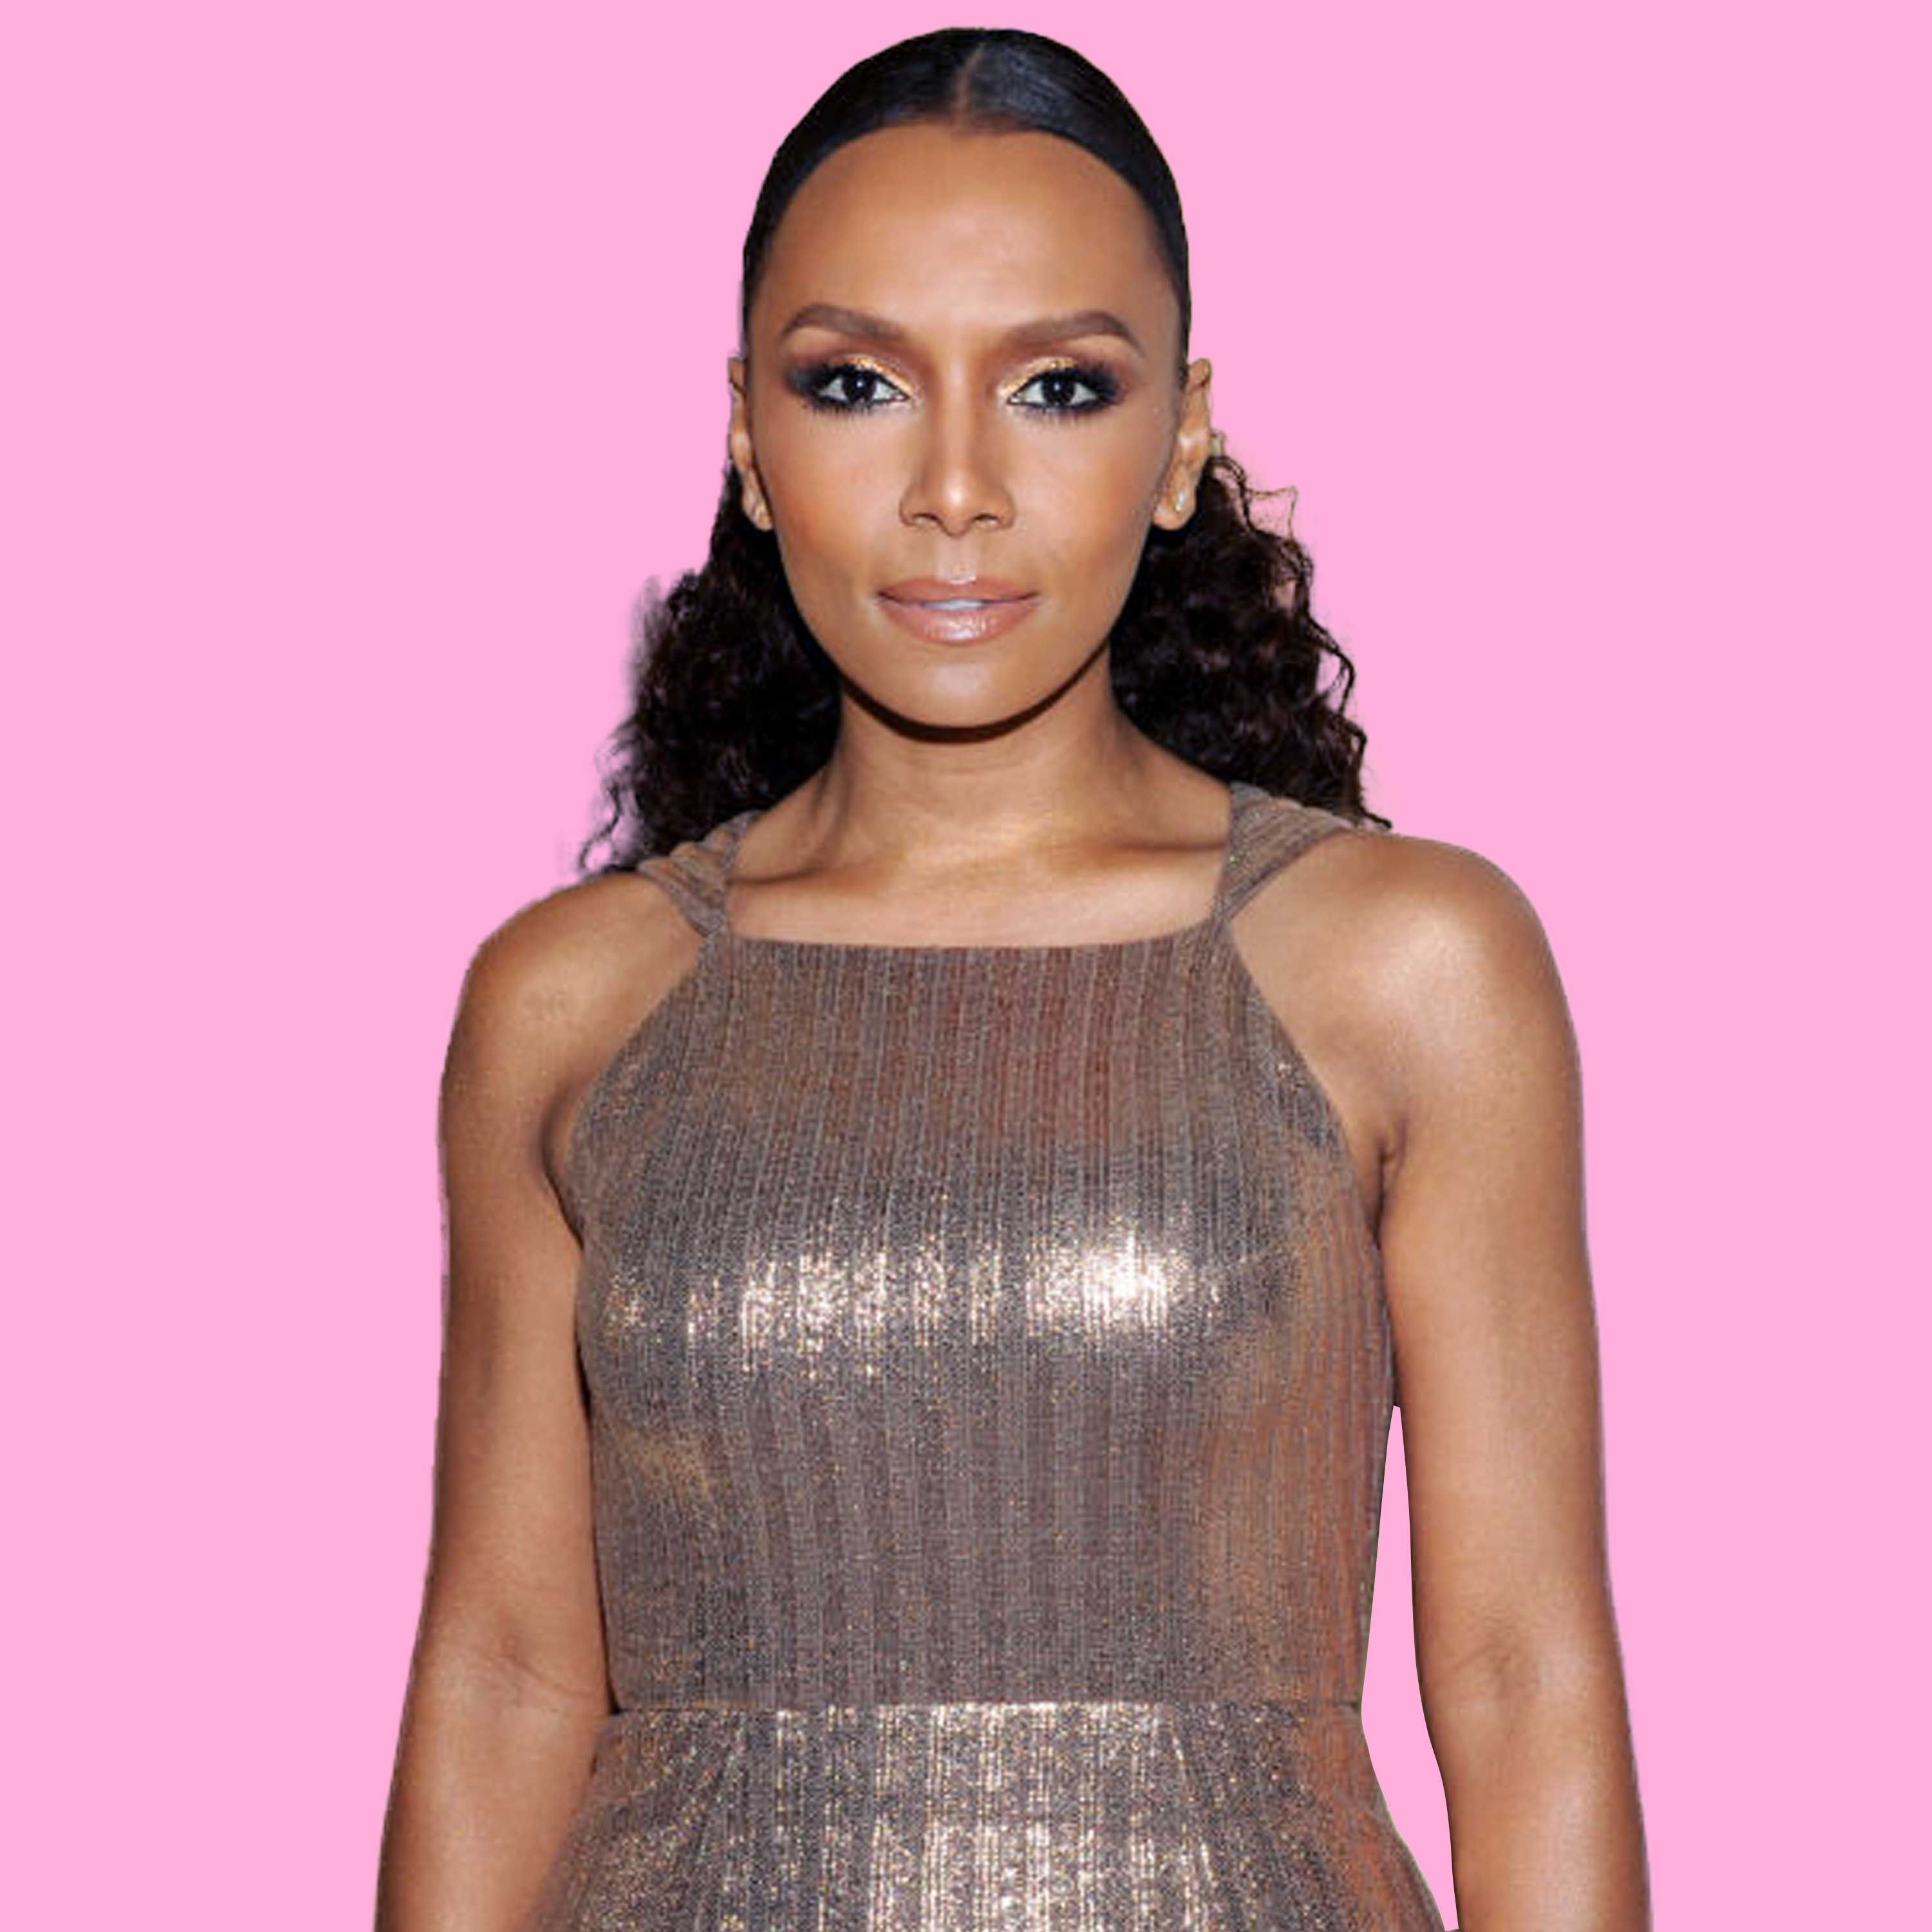 Janet Mock Says 'Respectability Politics Won't Save Us' After 'Pose' Snub By NAACP Image Awards